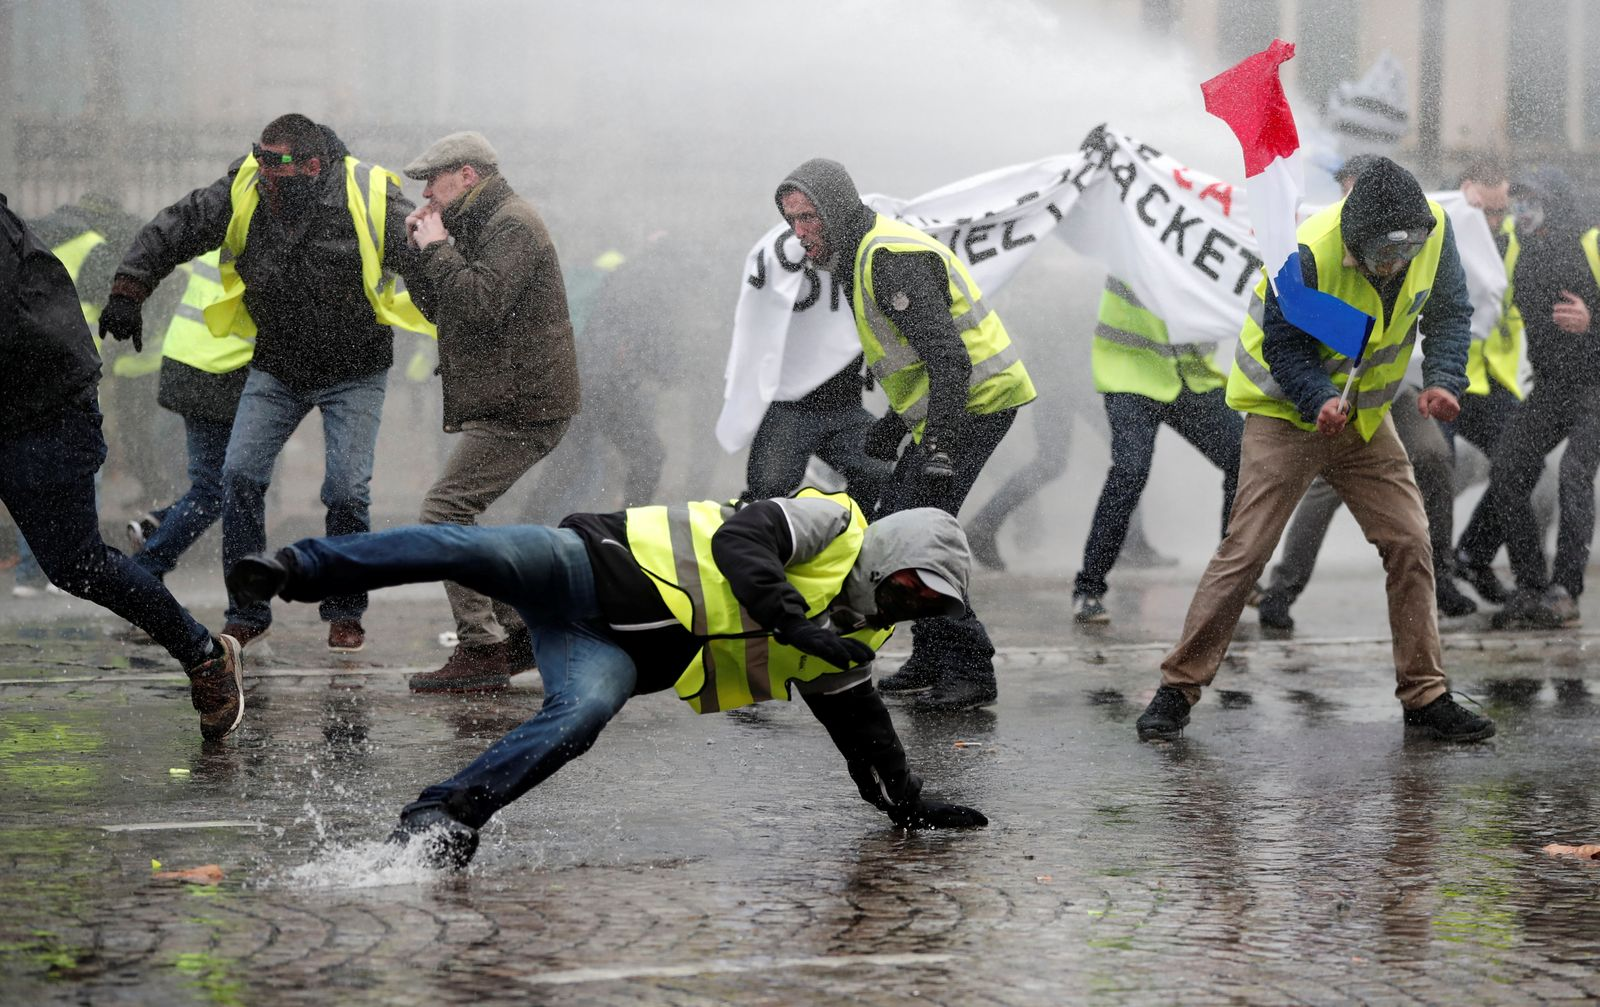 Protesters wearing yellow vest, a symbol of a French drivers' protest against higher fuel prices, stand up in front of a police water canon during clashes on the Champs-Elysees in Paris